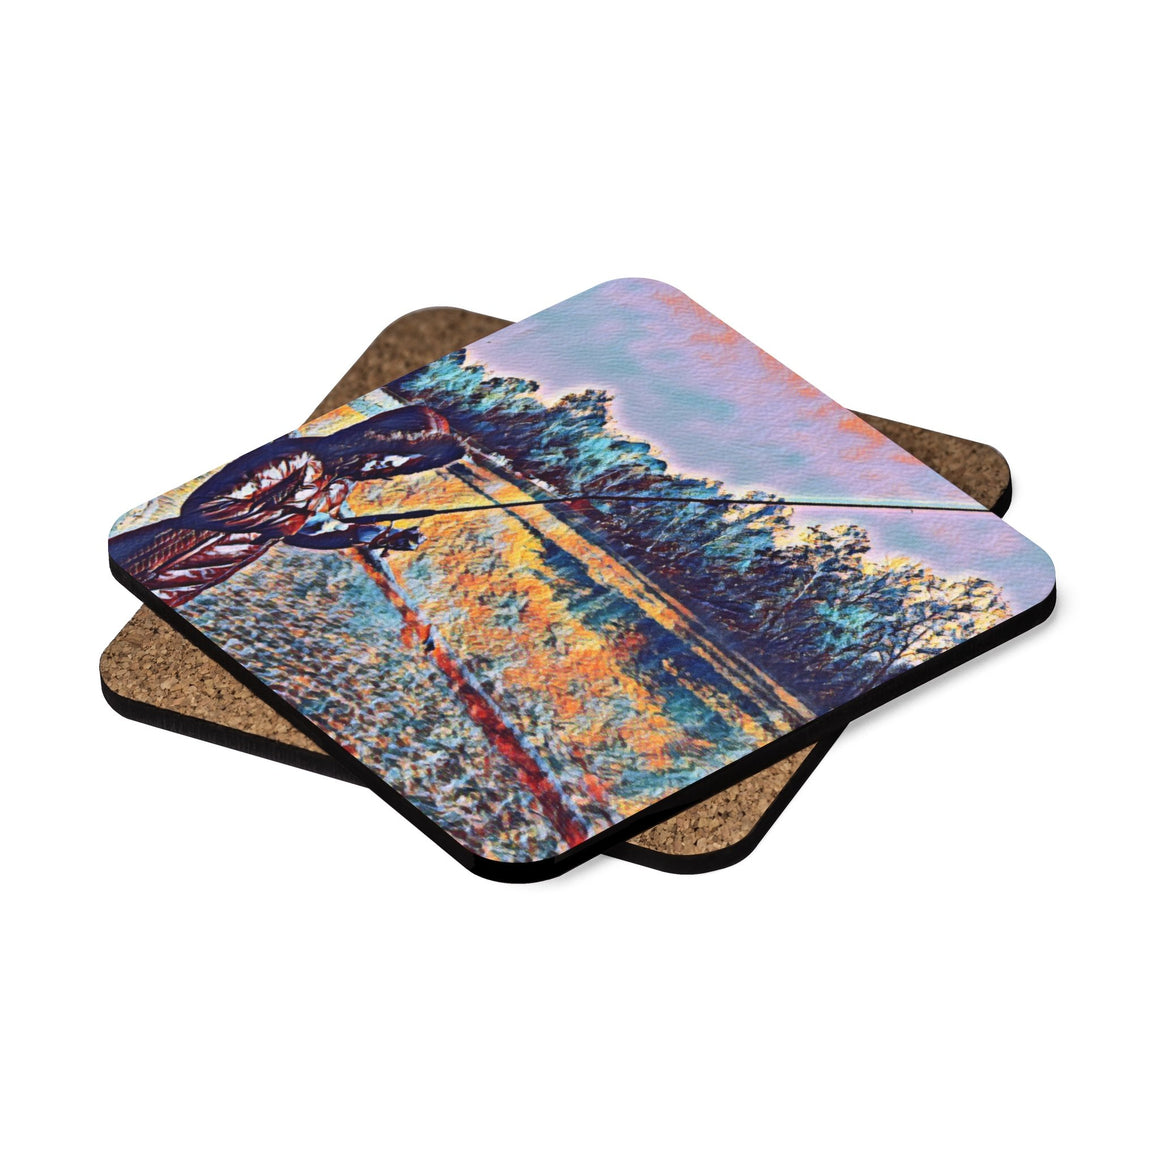 Levi Thang Fishing Design 10 Square Hardboard Coaster Set - 4pcs - I Am A Dreamer